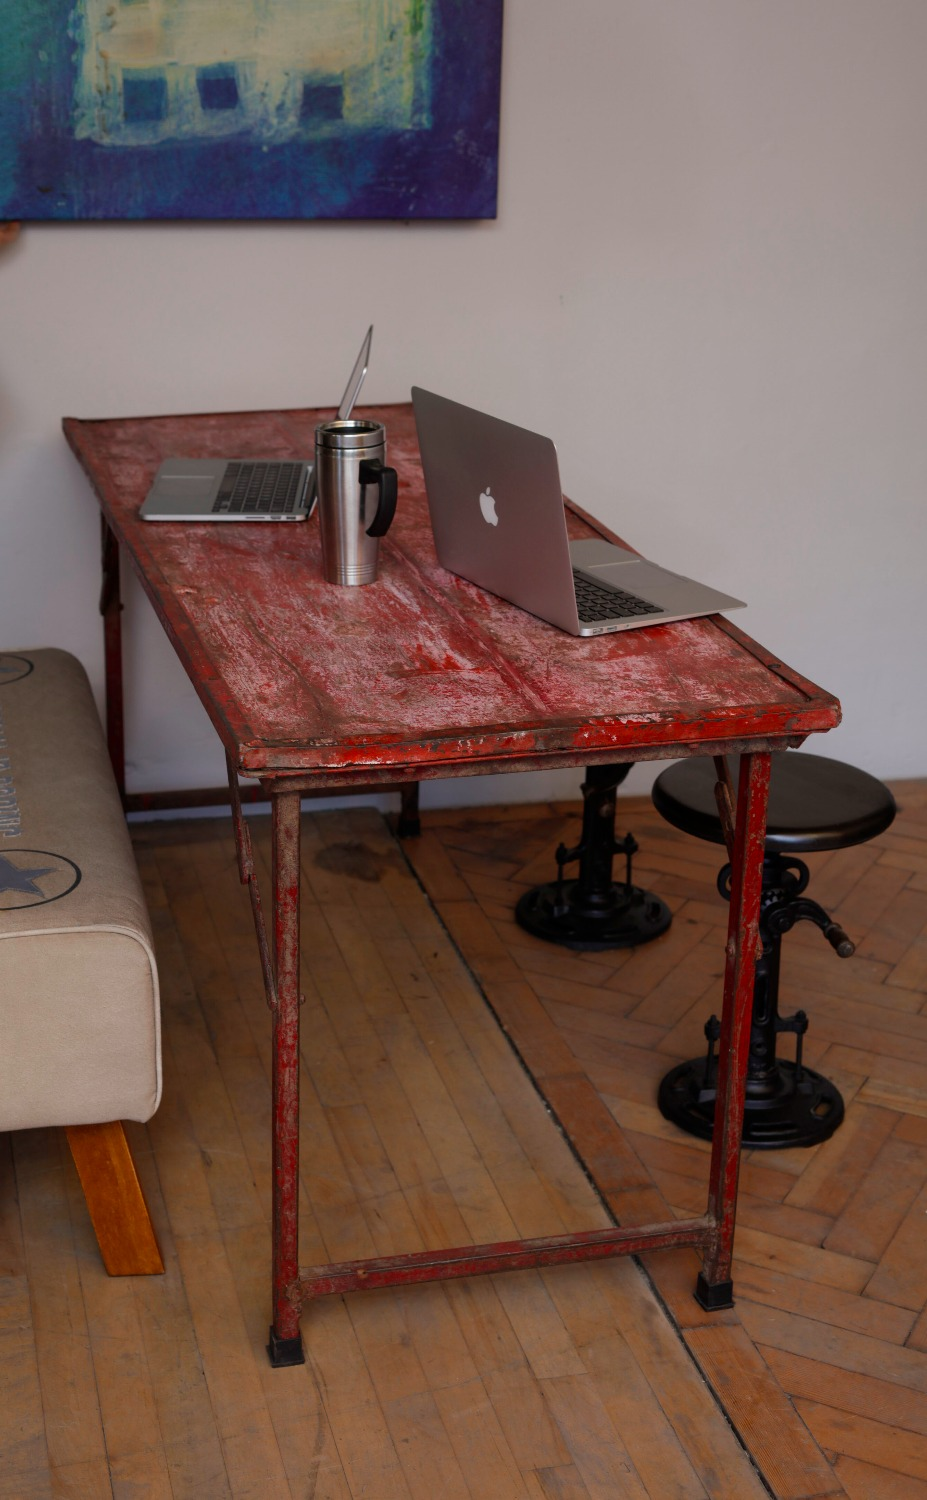 Vintage Metal and wood Foldable Table